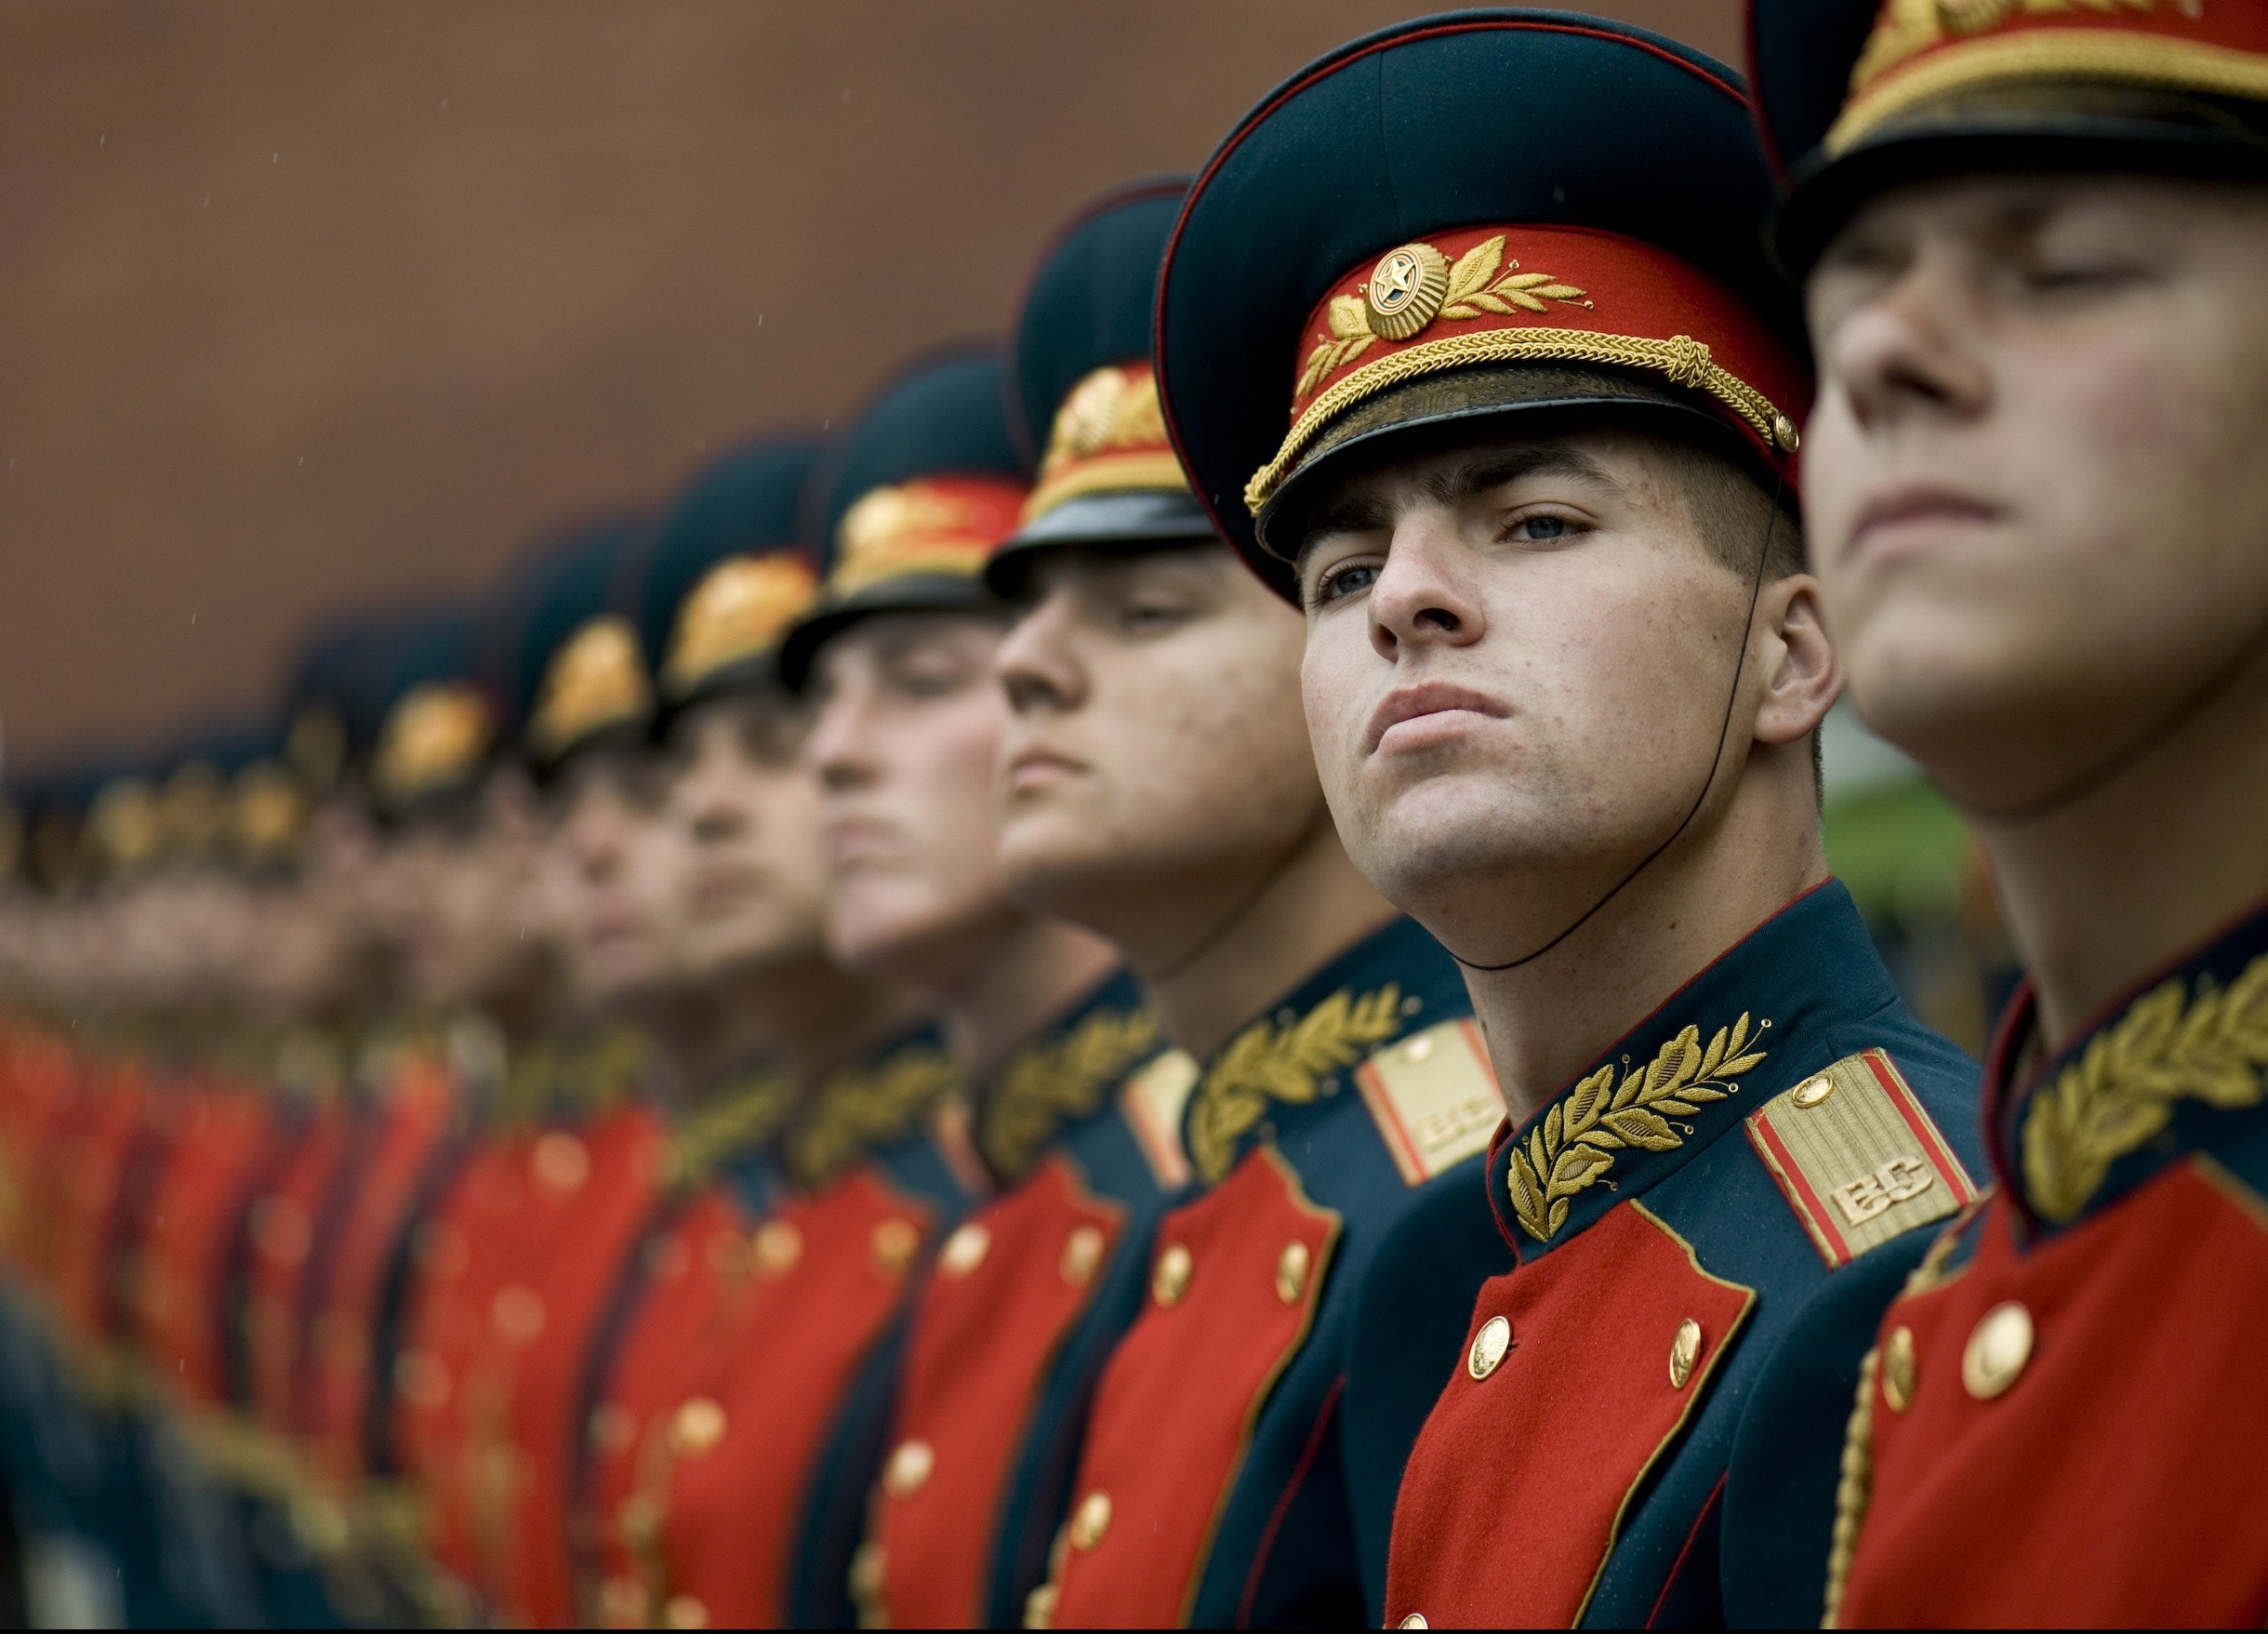 Men in Black and Red Cade Hats and Military Uniform, Adult, Military, Soldiers, Sentry, HQ Photo